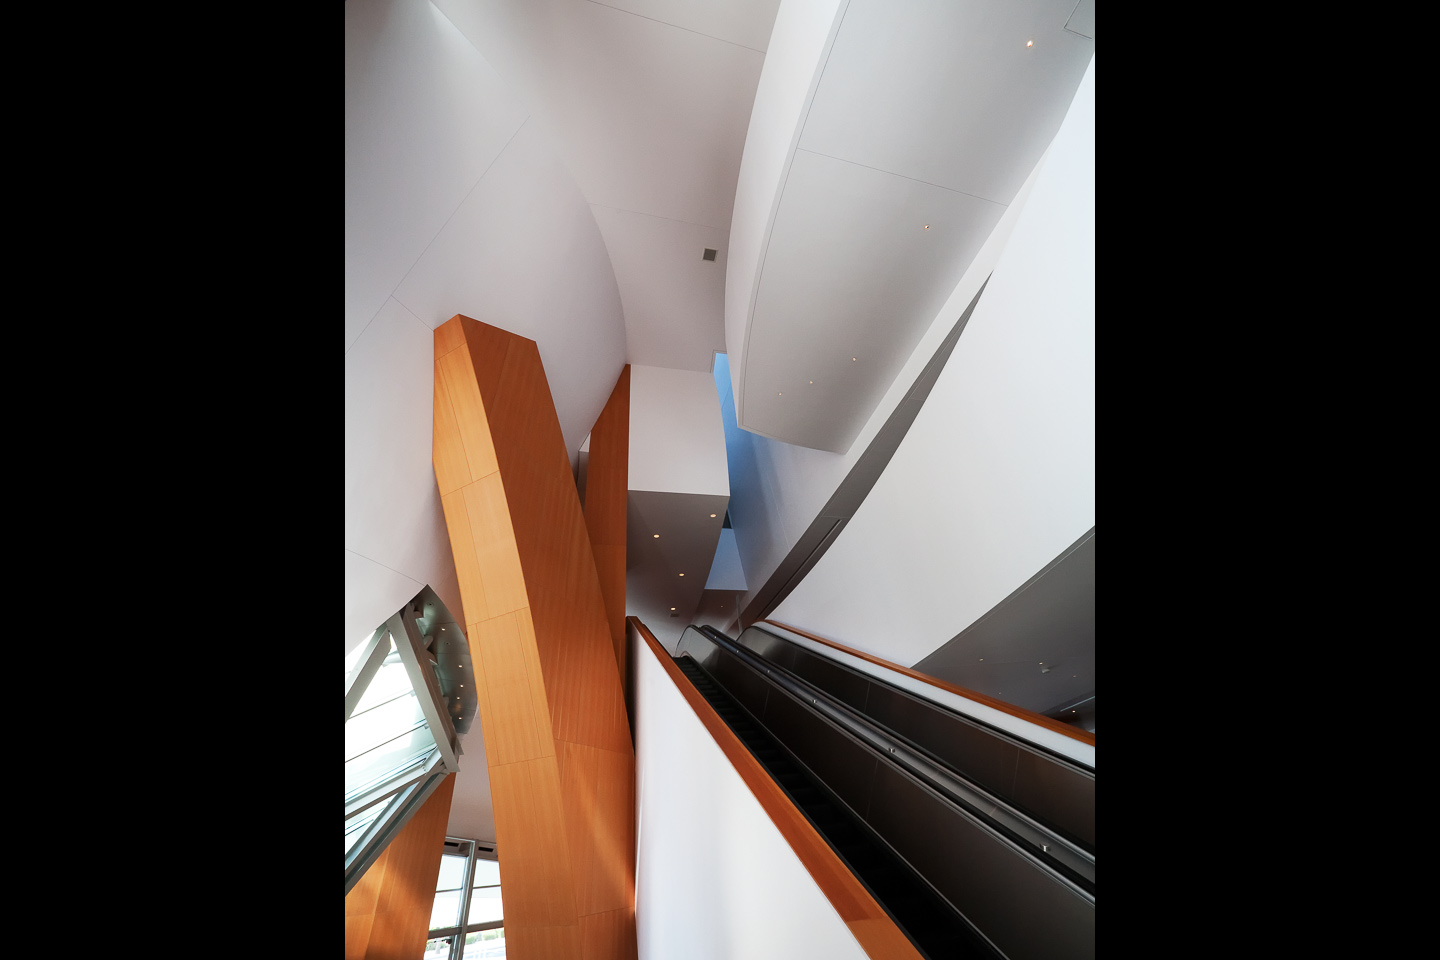 escalators, undulating lobby ceilings and soaring wood columns inside the Walt Disney Concert Hall, photographed by Jacob Rosenfeld